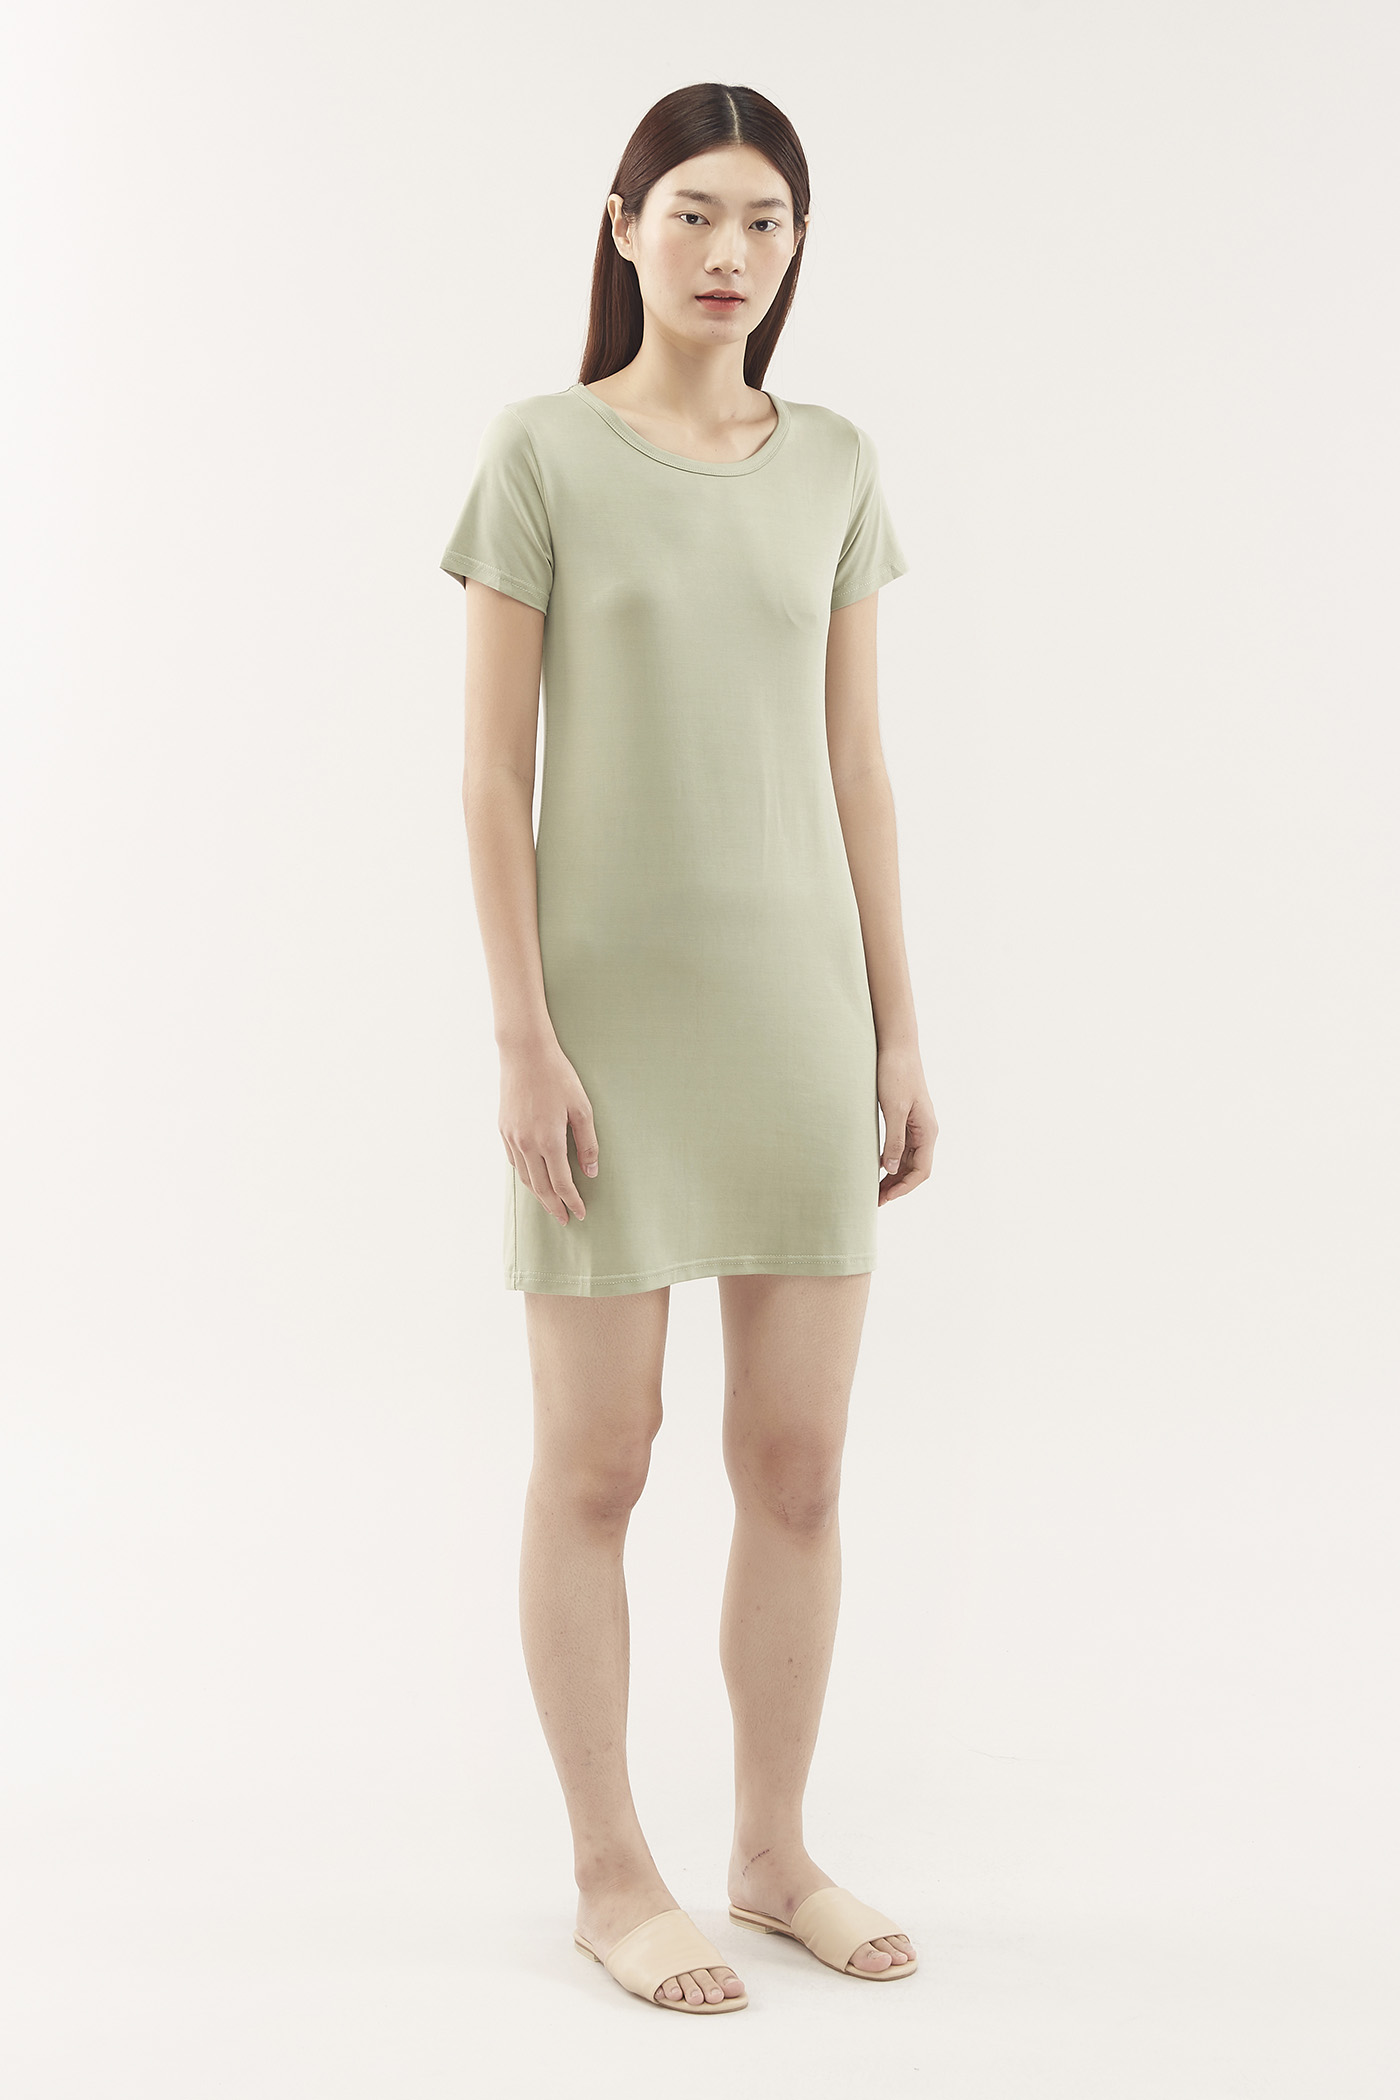 Dalphin T-shirt Dress